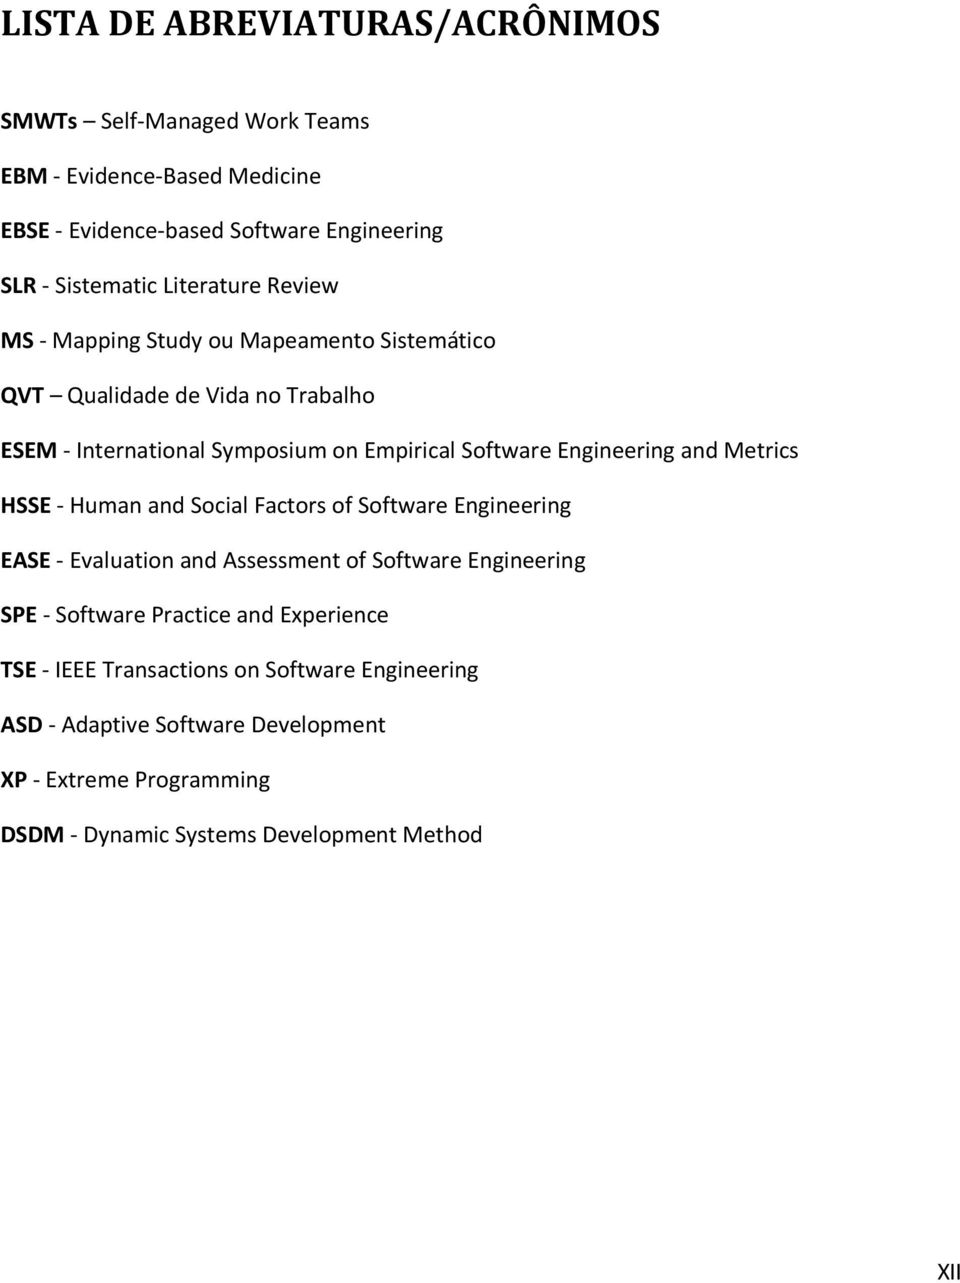 Engineering and Metrics HSSE - Human and Social Factors of Software Engineering EASE - Evaluation and Assessment of Software Engineering SPE - Software